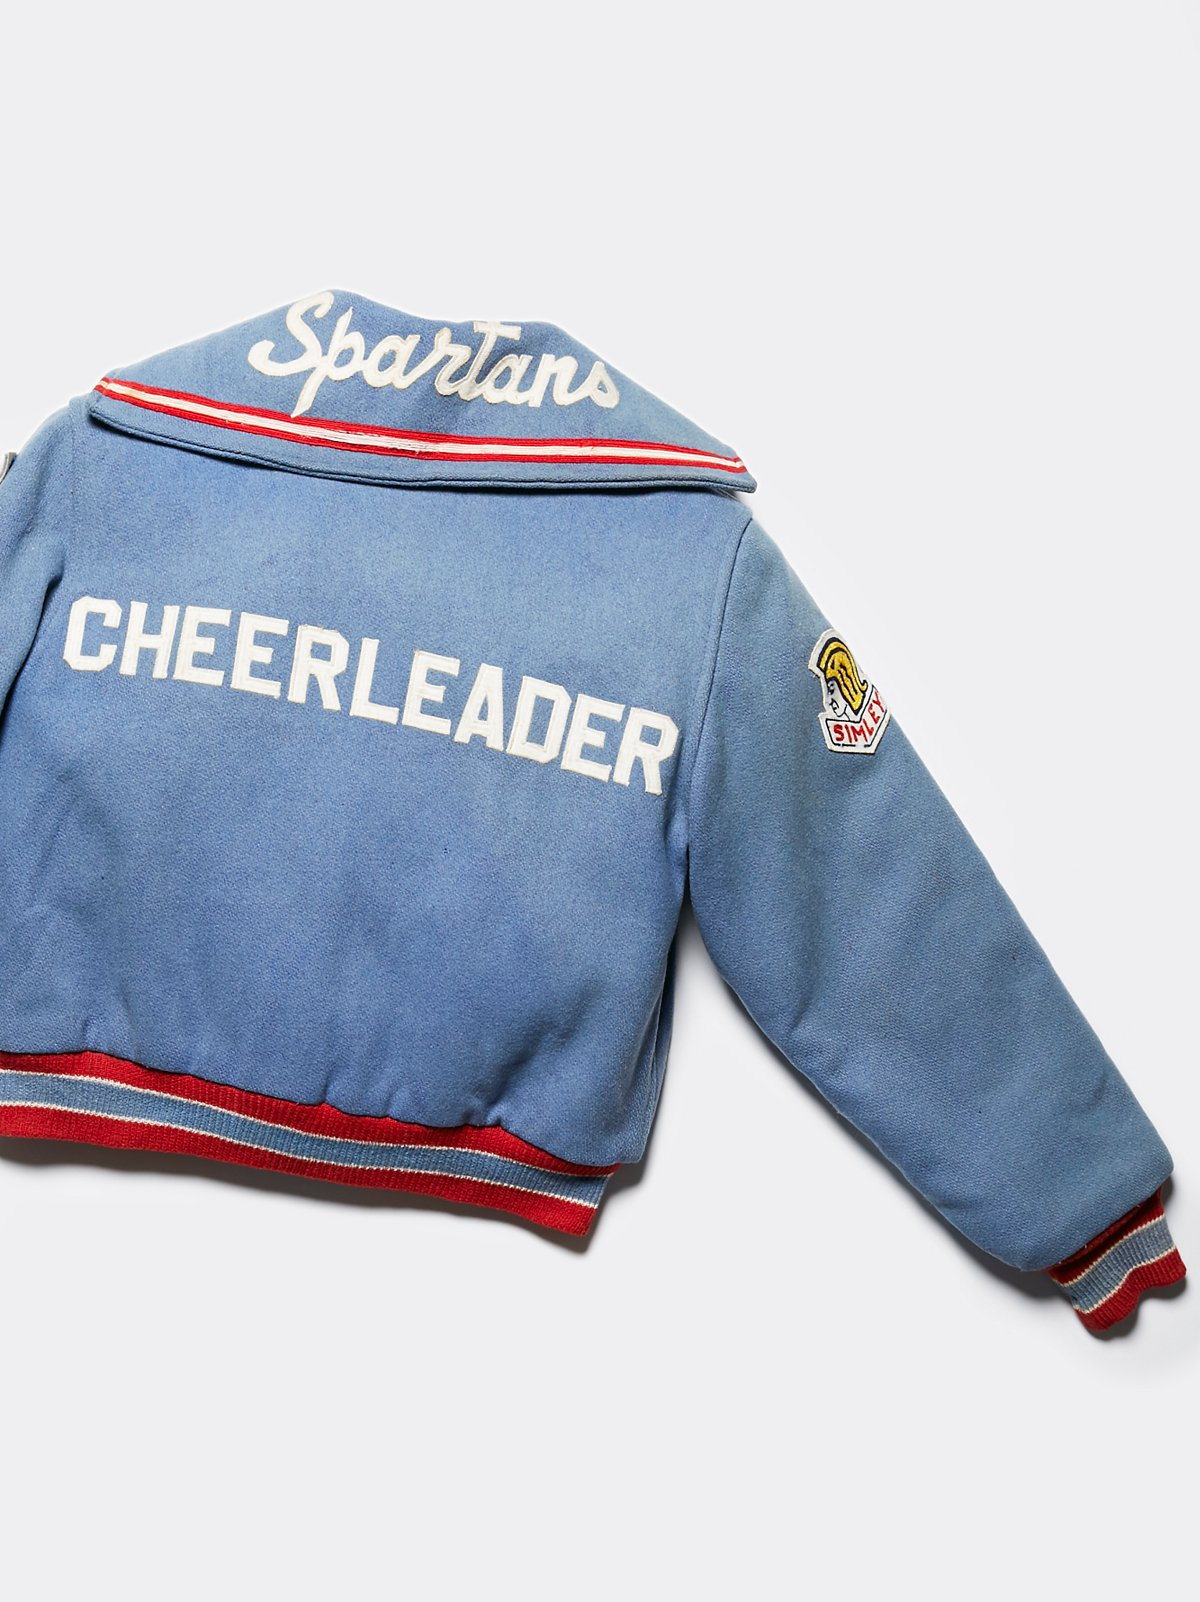 Vintage 1960s Cheer Letterman Jacket